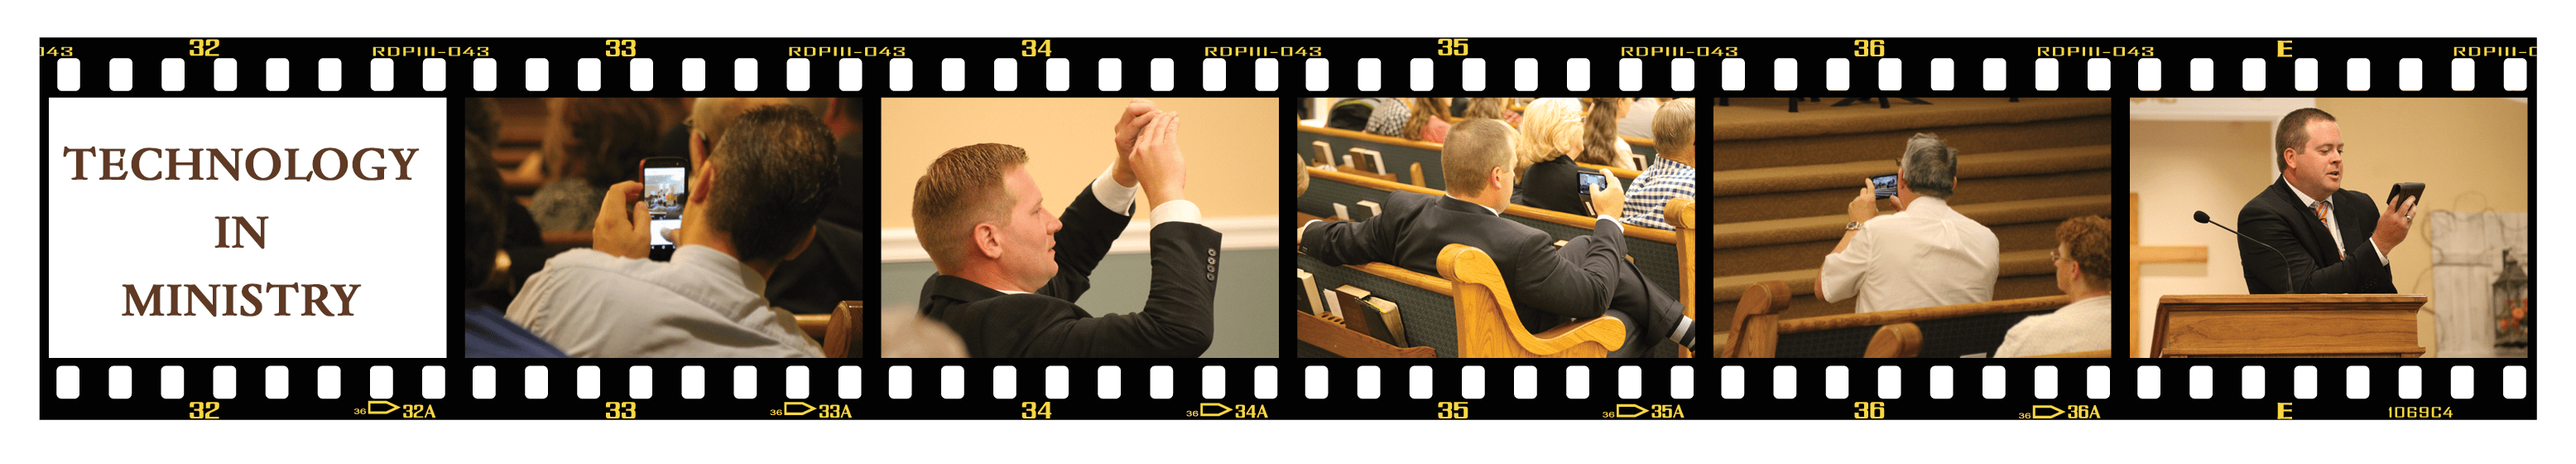 technology in ministry filmstrip image